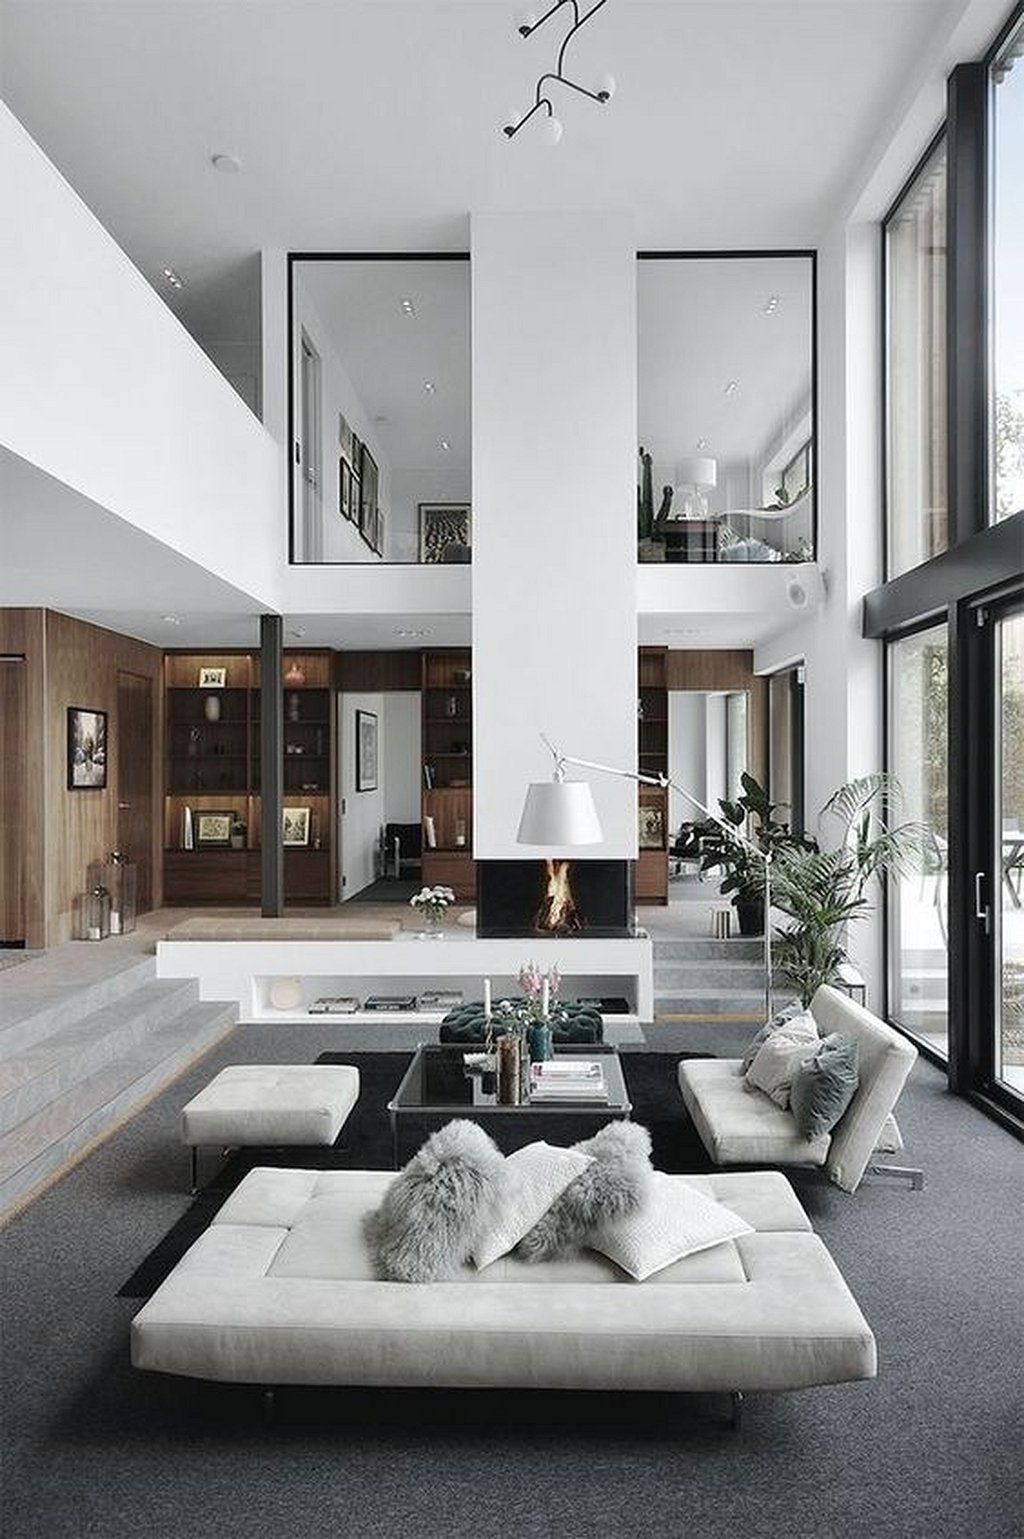 You Might Be Looking For A Selection Of Luxury Furniture Pieces For Your Next Interior Design Pr Modern Houses Interior Modern House Design Minimalism Interior